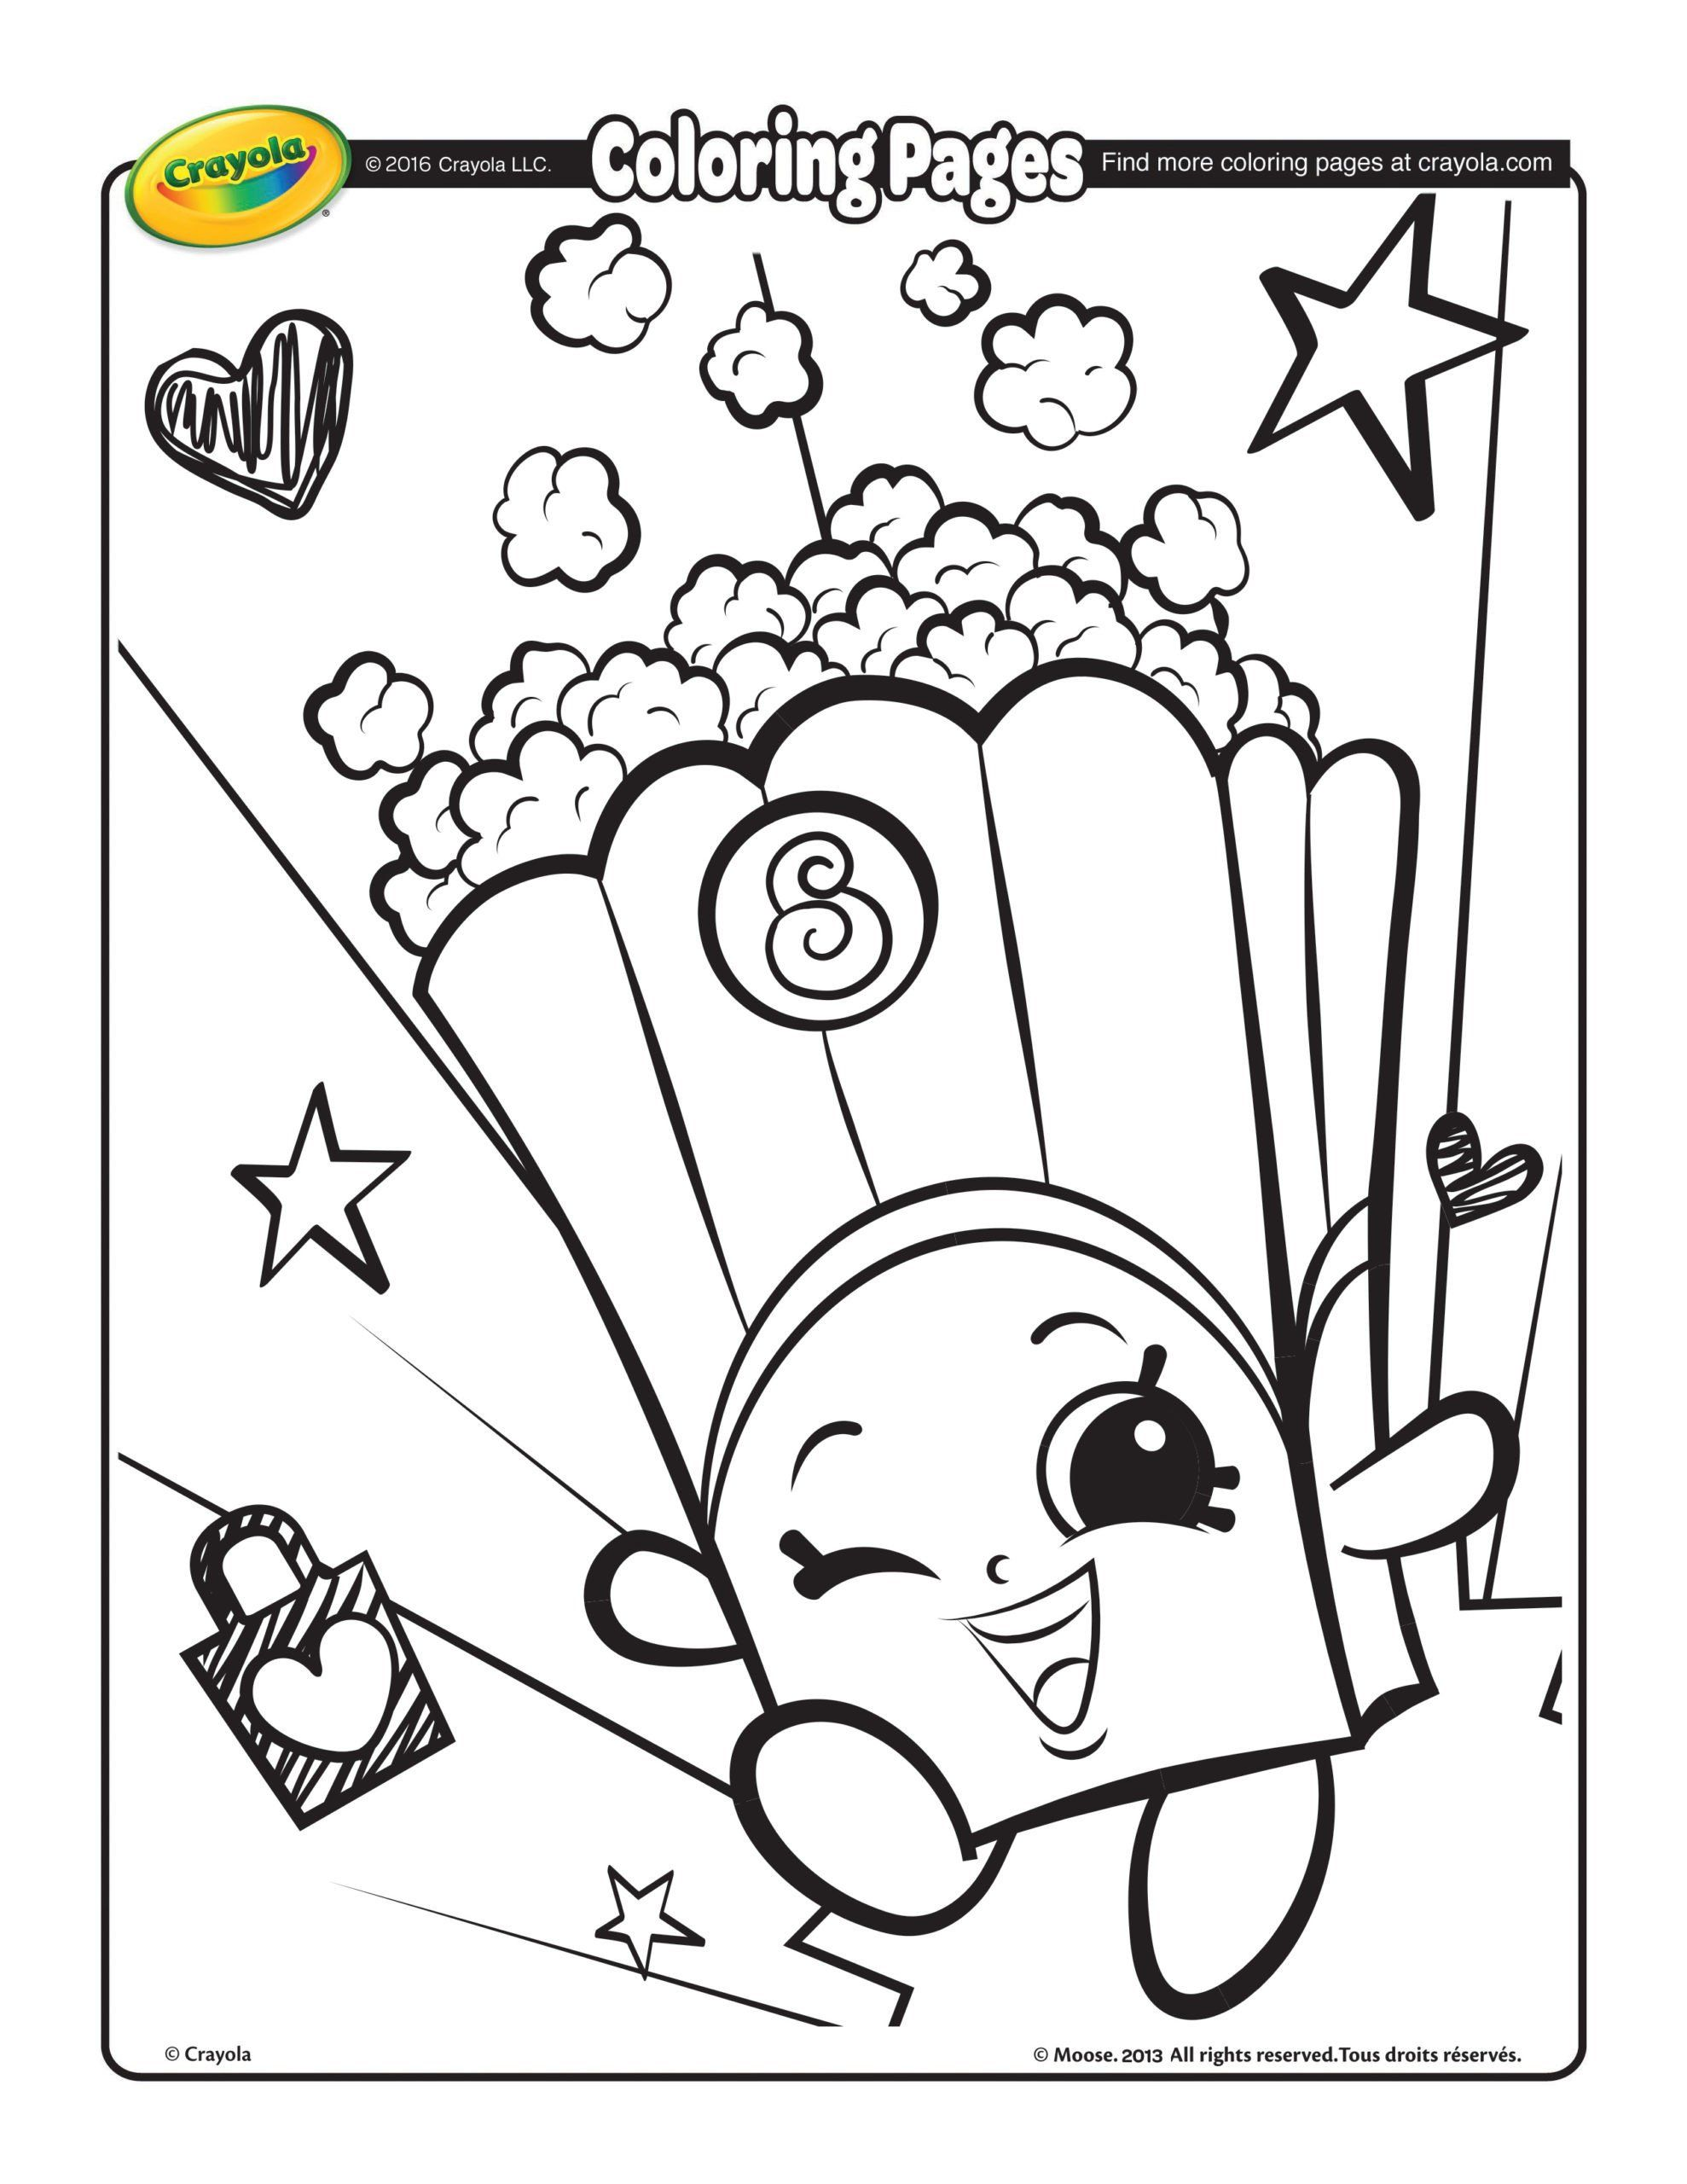 Free Coloring Books For Kids Crayola Free Coloring Pagessgiving Happy Printable For Shopkins Colouring Pages Christmas Coloring Pages Crayola Coloring Pages